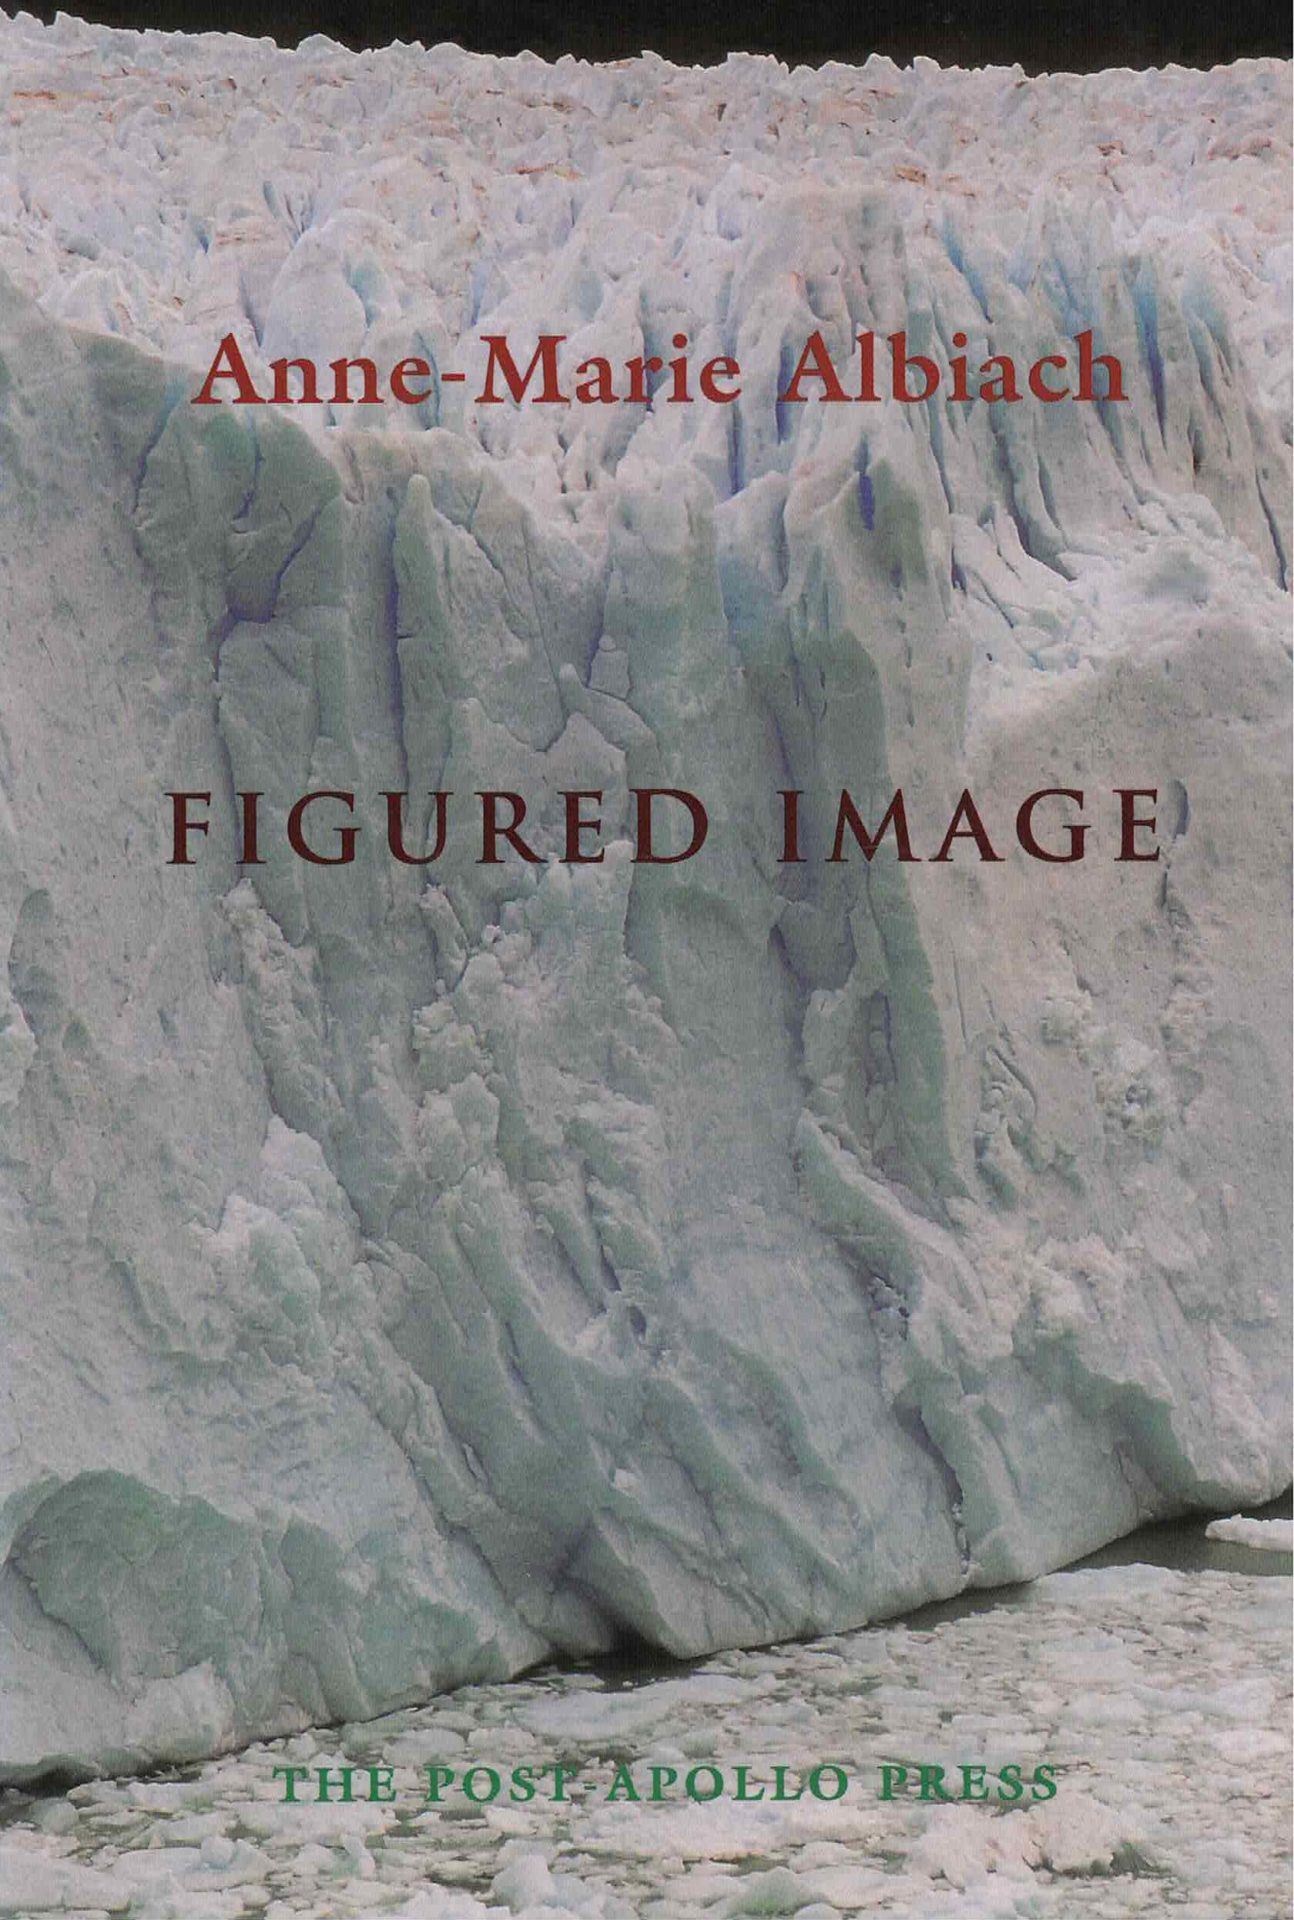 cover of Figured Image by anne-marie albiach, large ice glaciar with words printed on top in red and maroontext